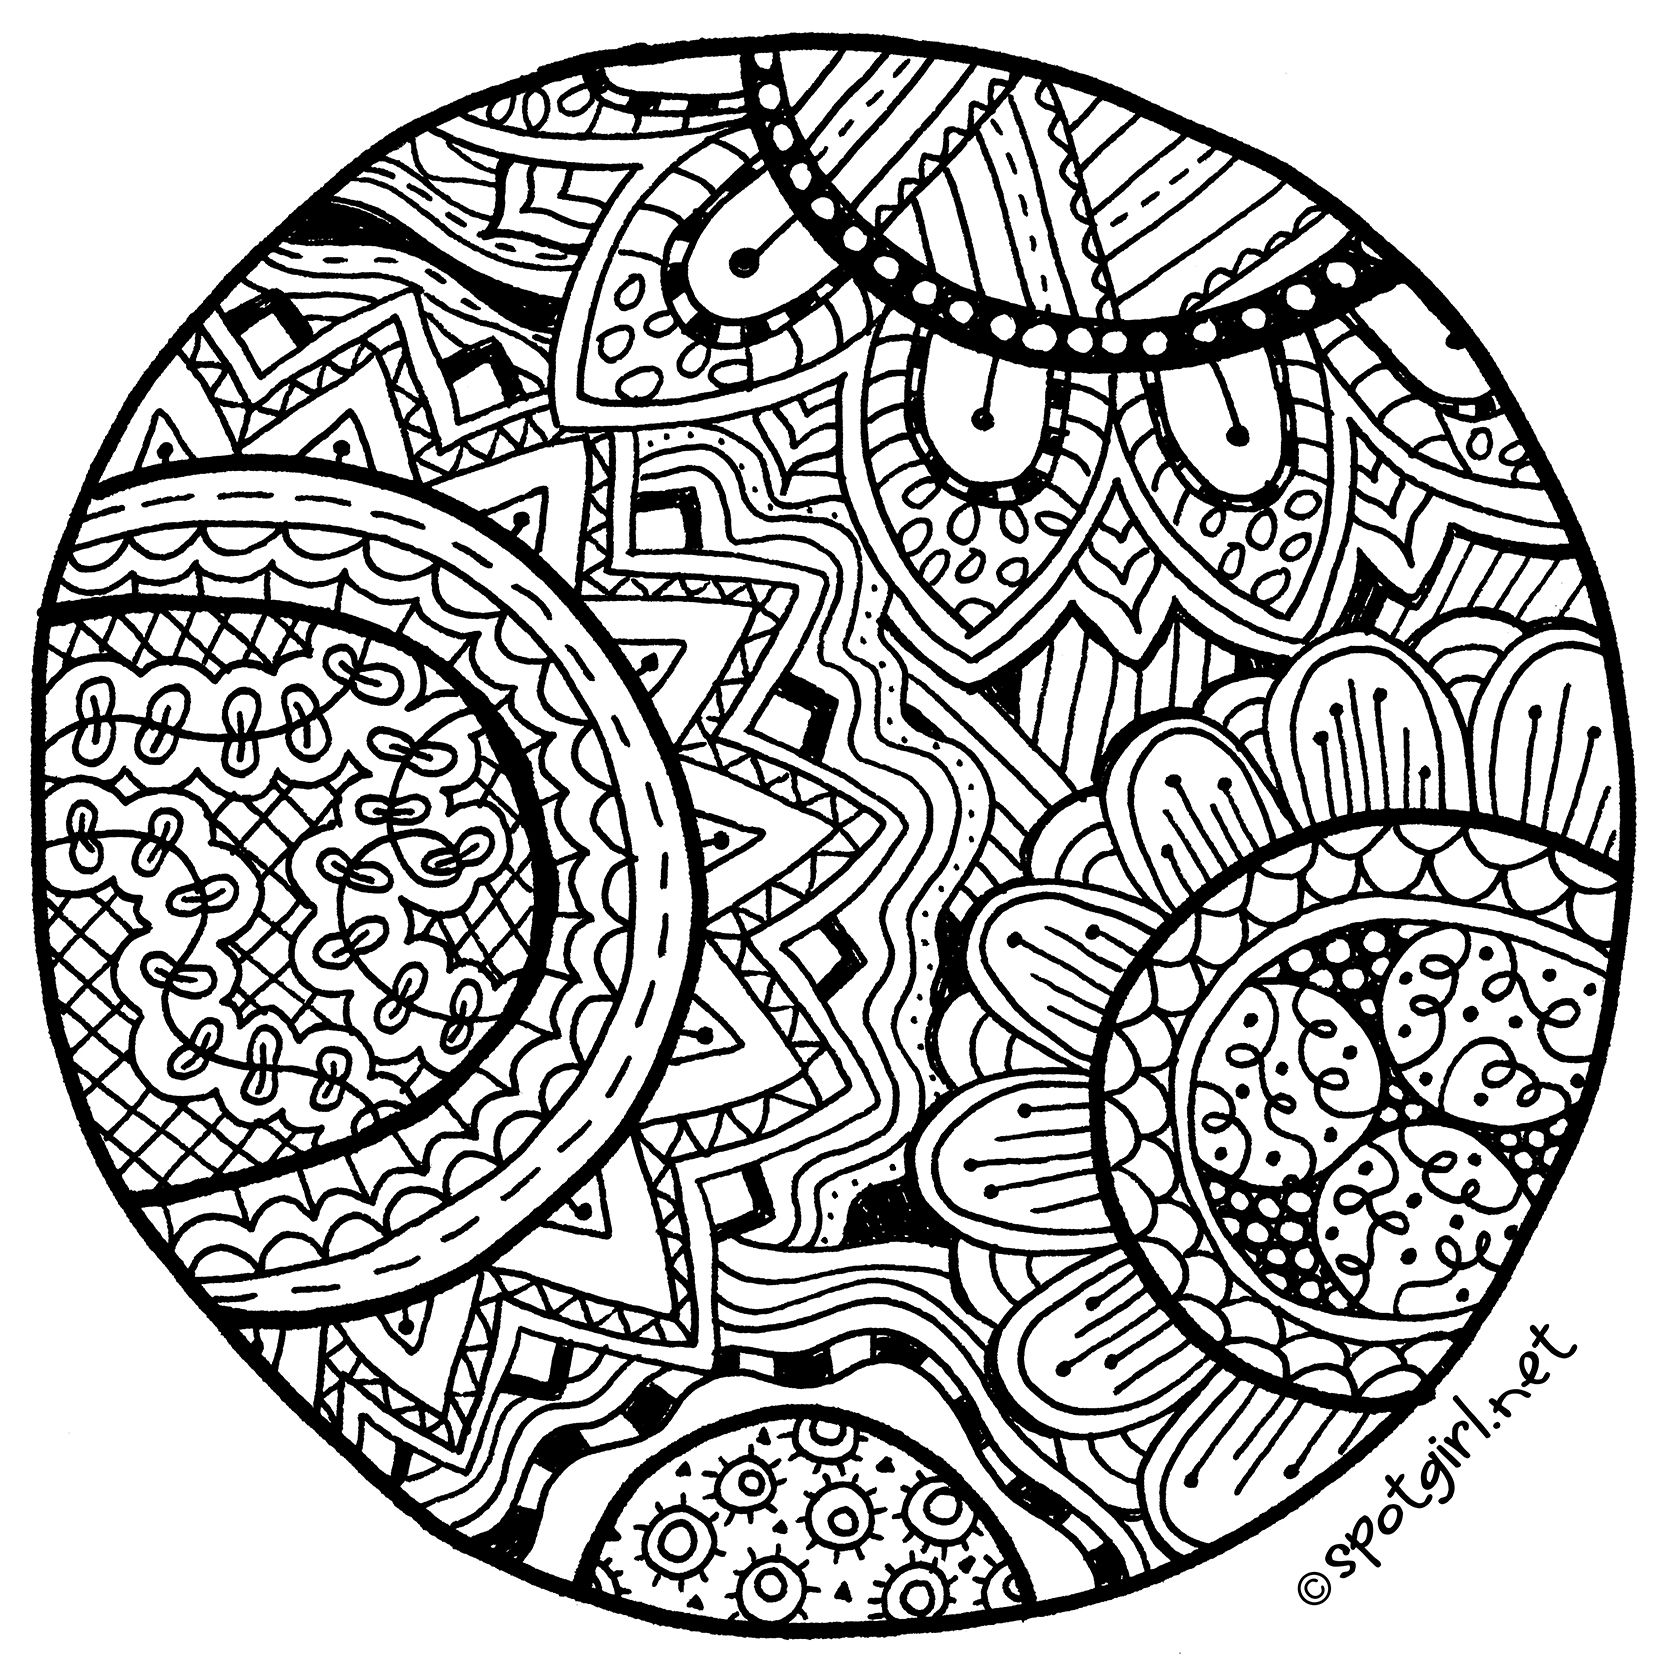 zentangle patterns free printable zentangle inspired coloring page printable pdf zendoodle free zentangle patterns printable